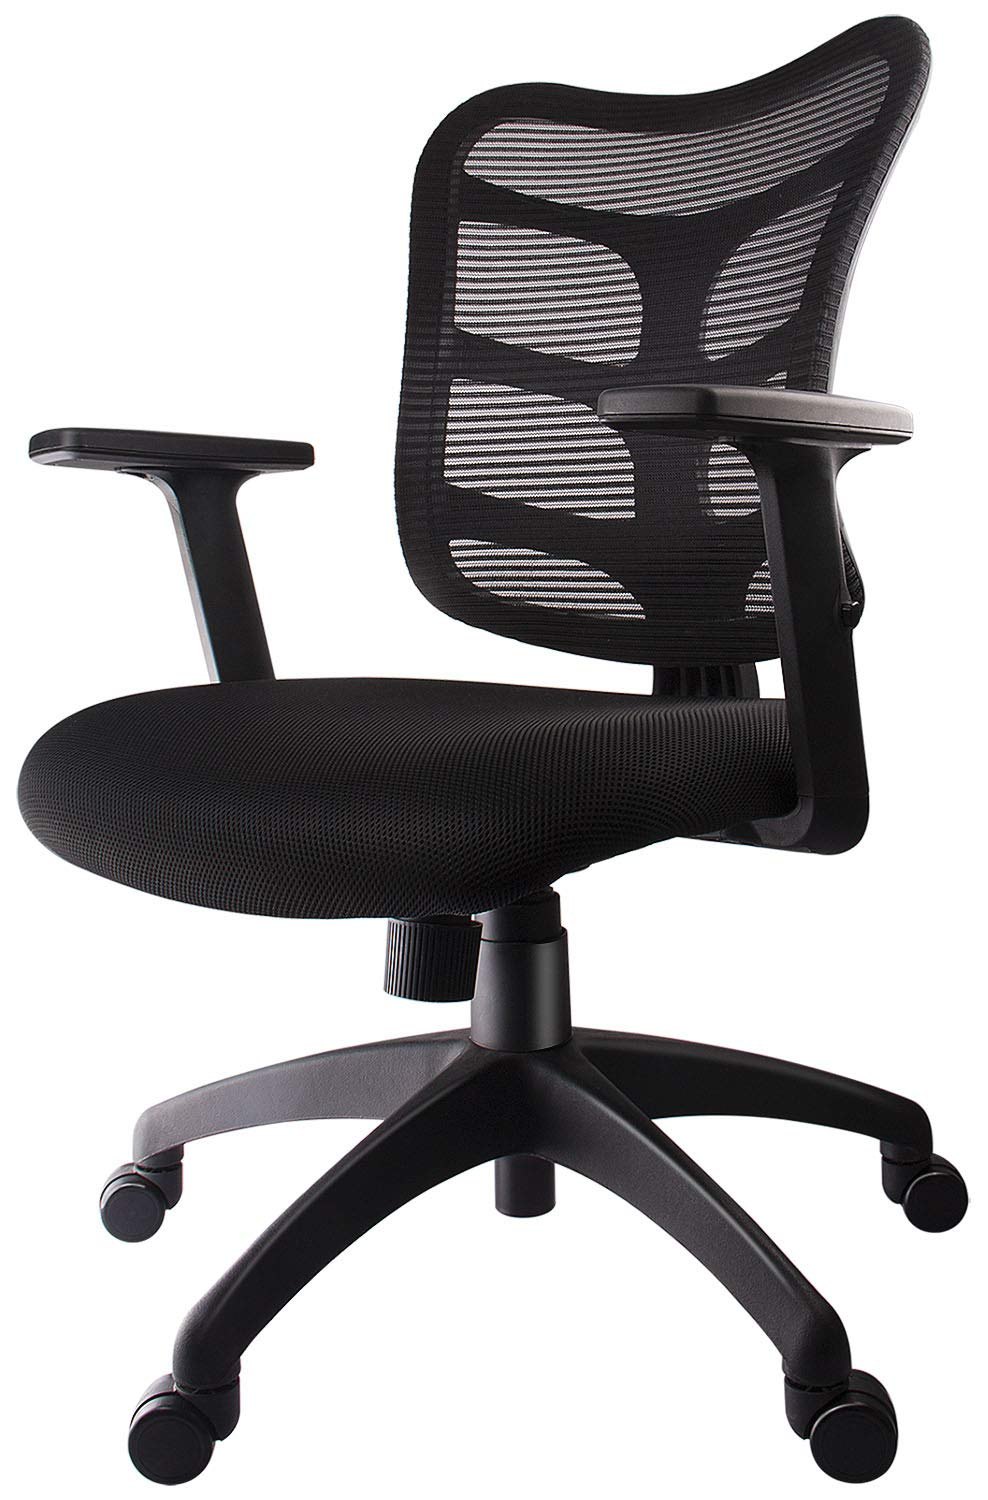 Smugdesk 0581F Ergonomic Office Mesh Computer Desk Swivel Task Chair with Adjustable Armrests, Black